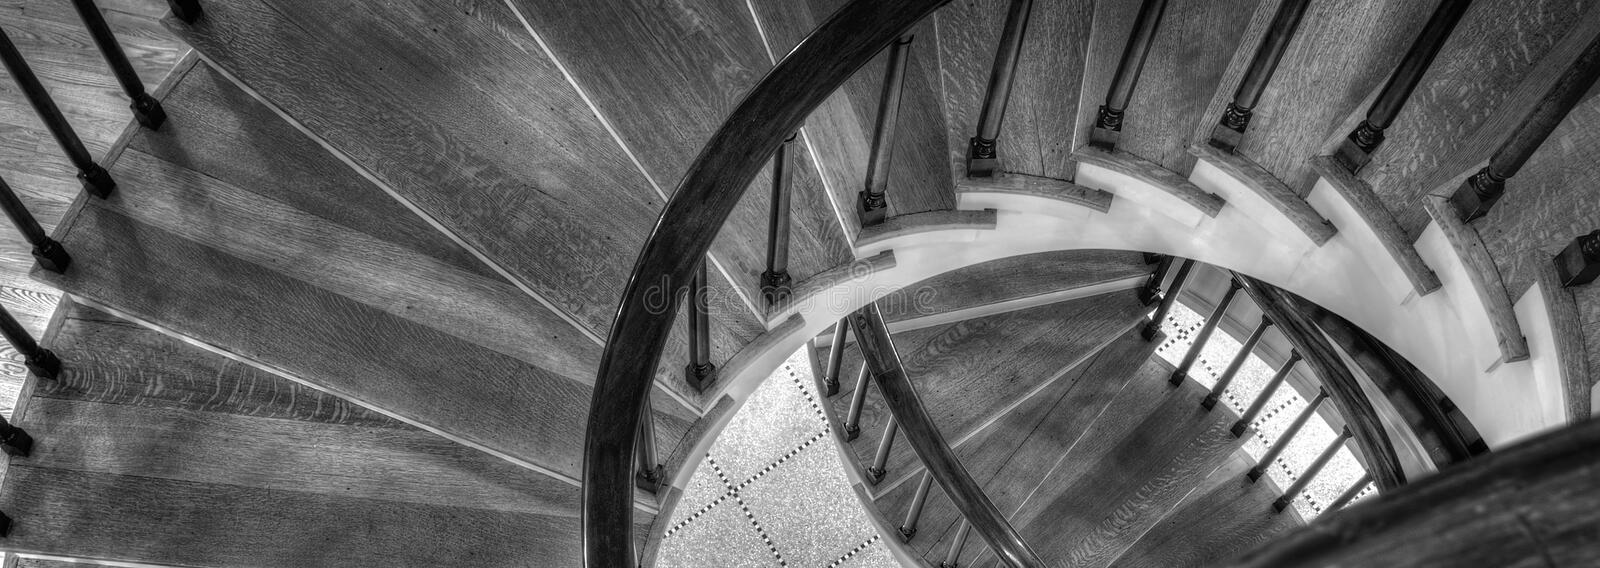 Download Curved Staircase stock image. Image of horizontal, circle - 32648177